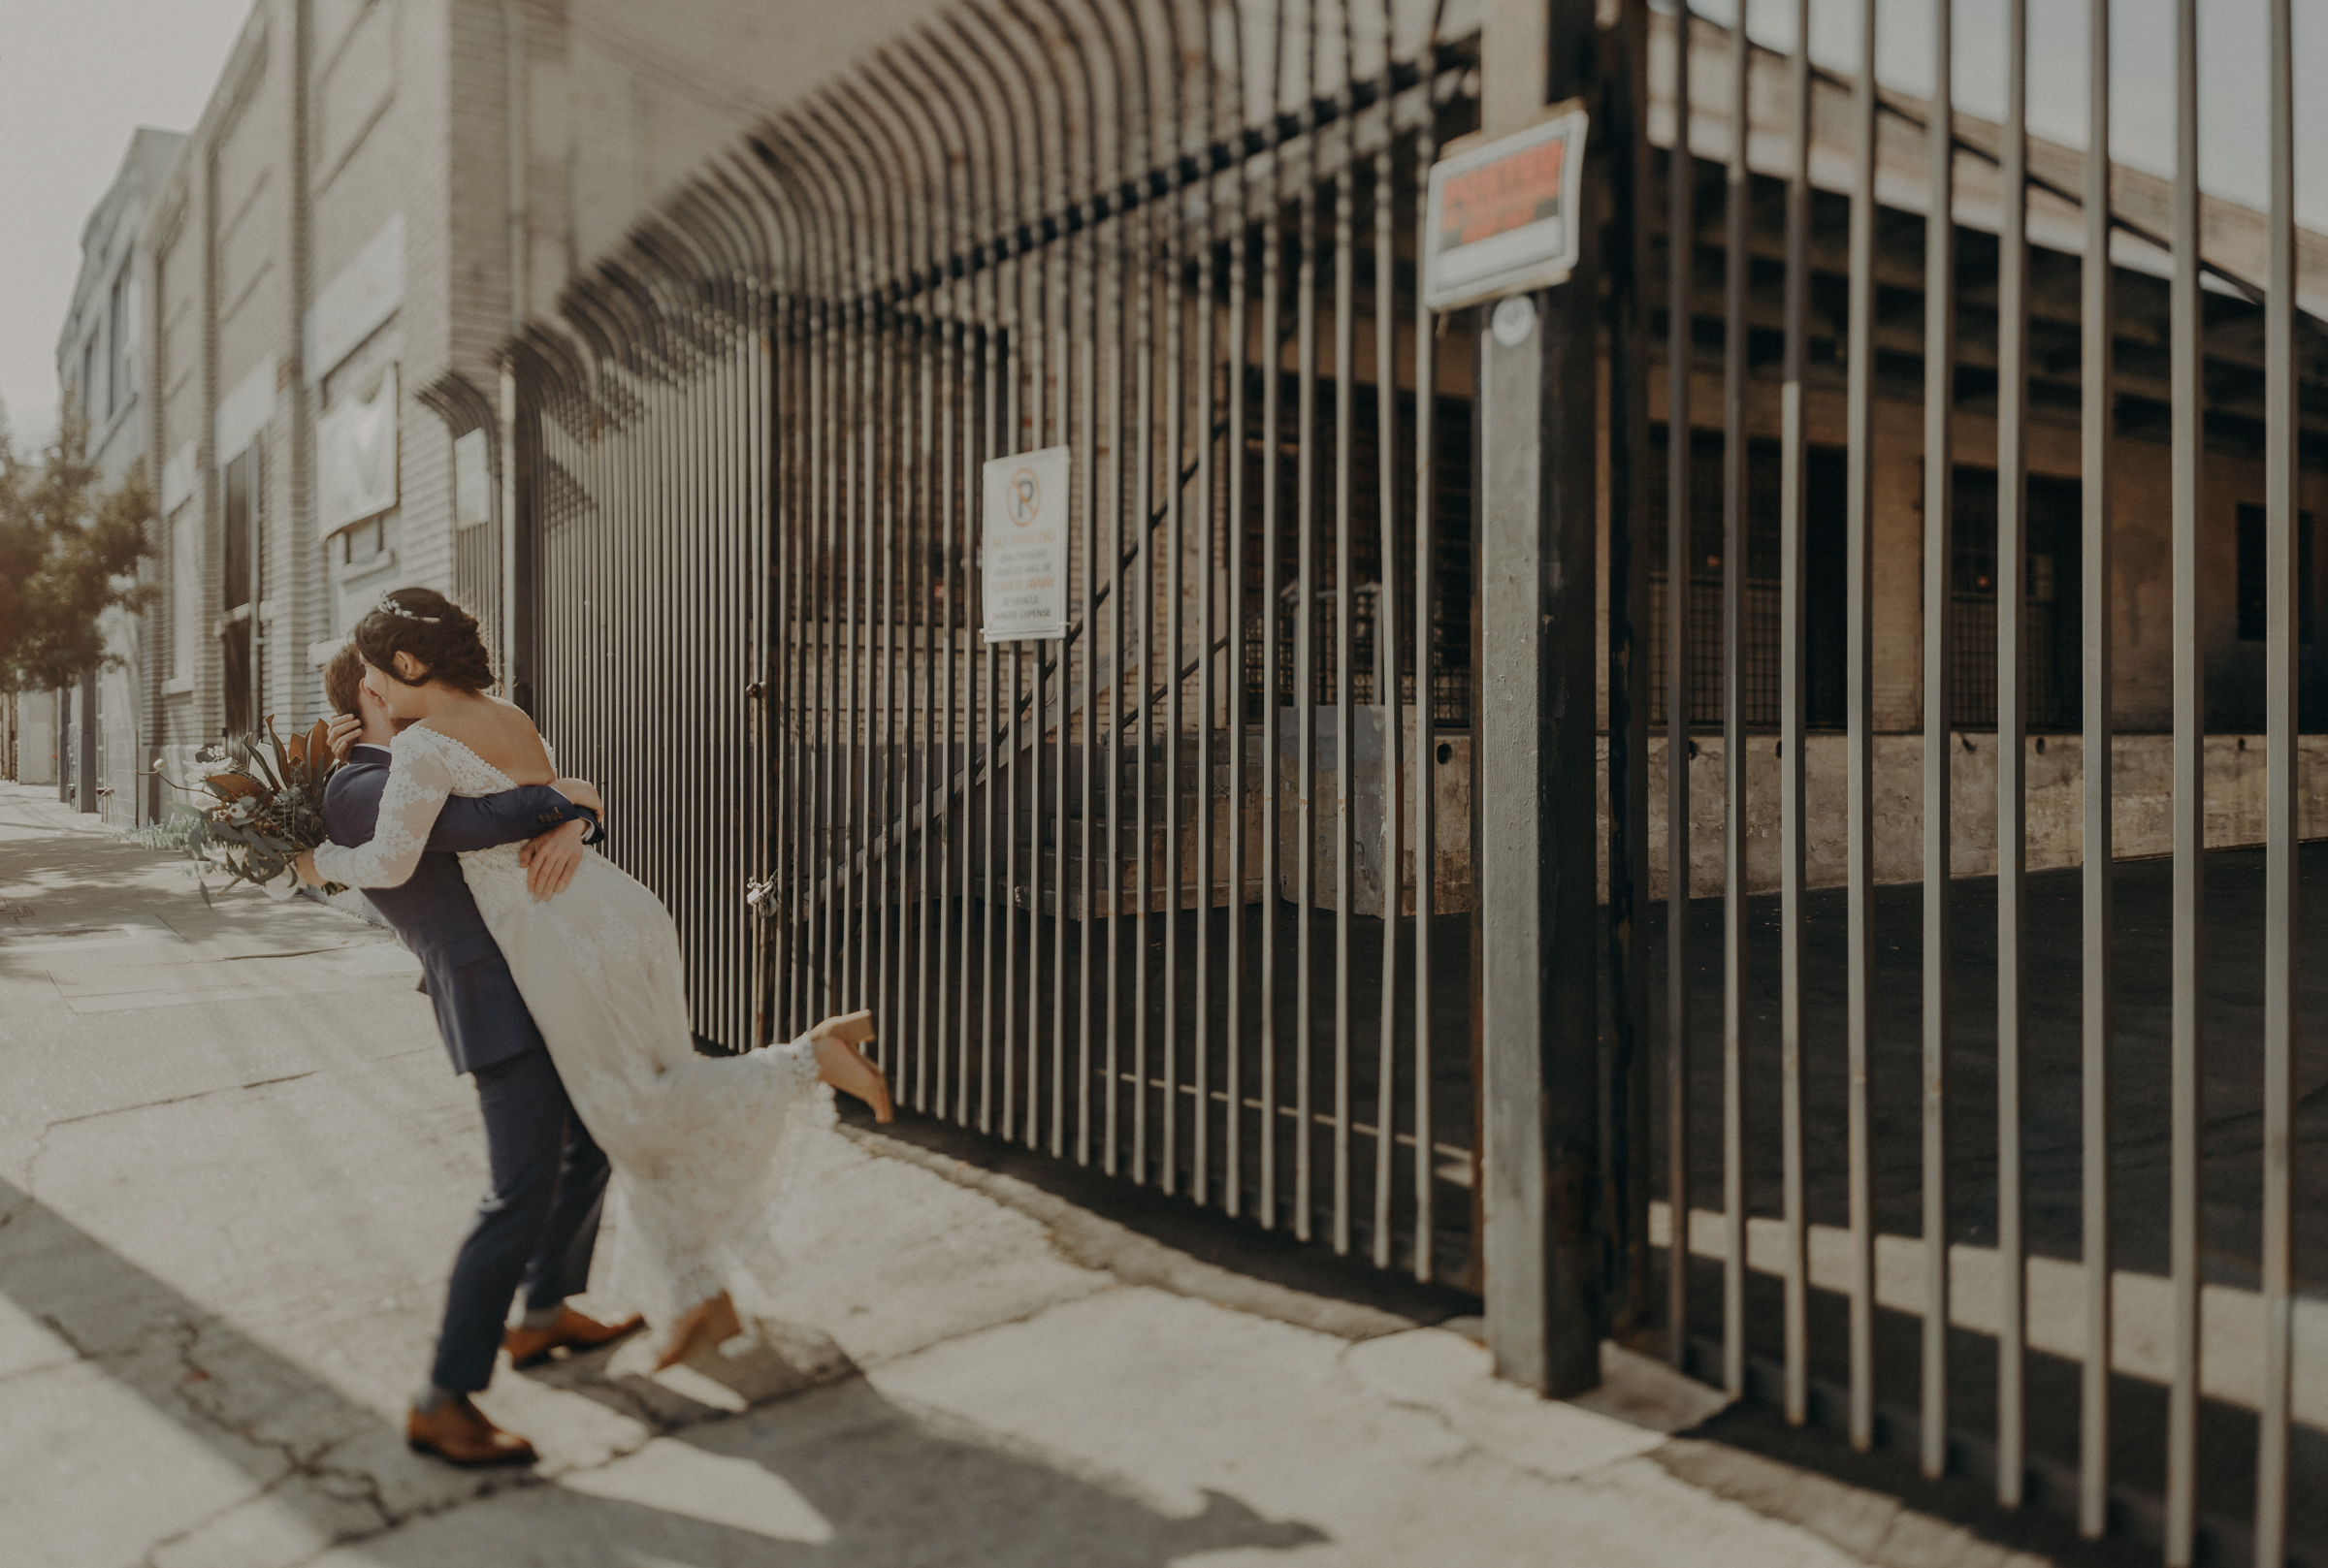 Isaiah + Taylor Photography - The Unique Space Wedding, Los Angeles Wedding Photography 091.jpg